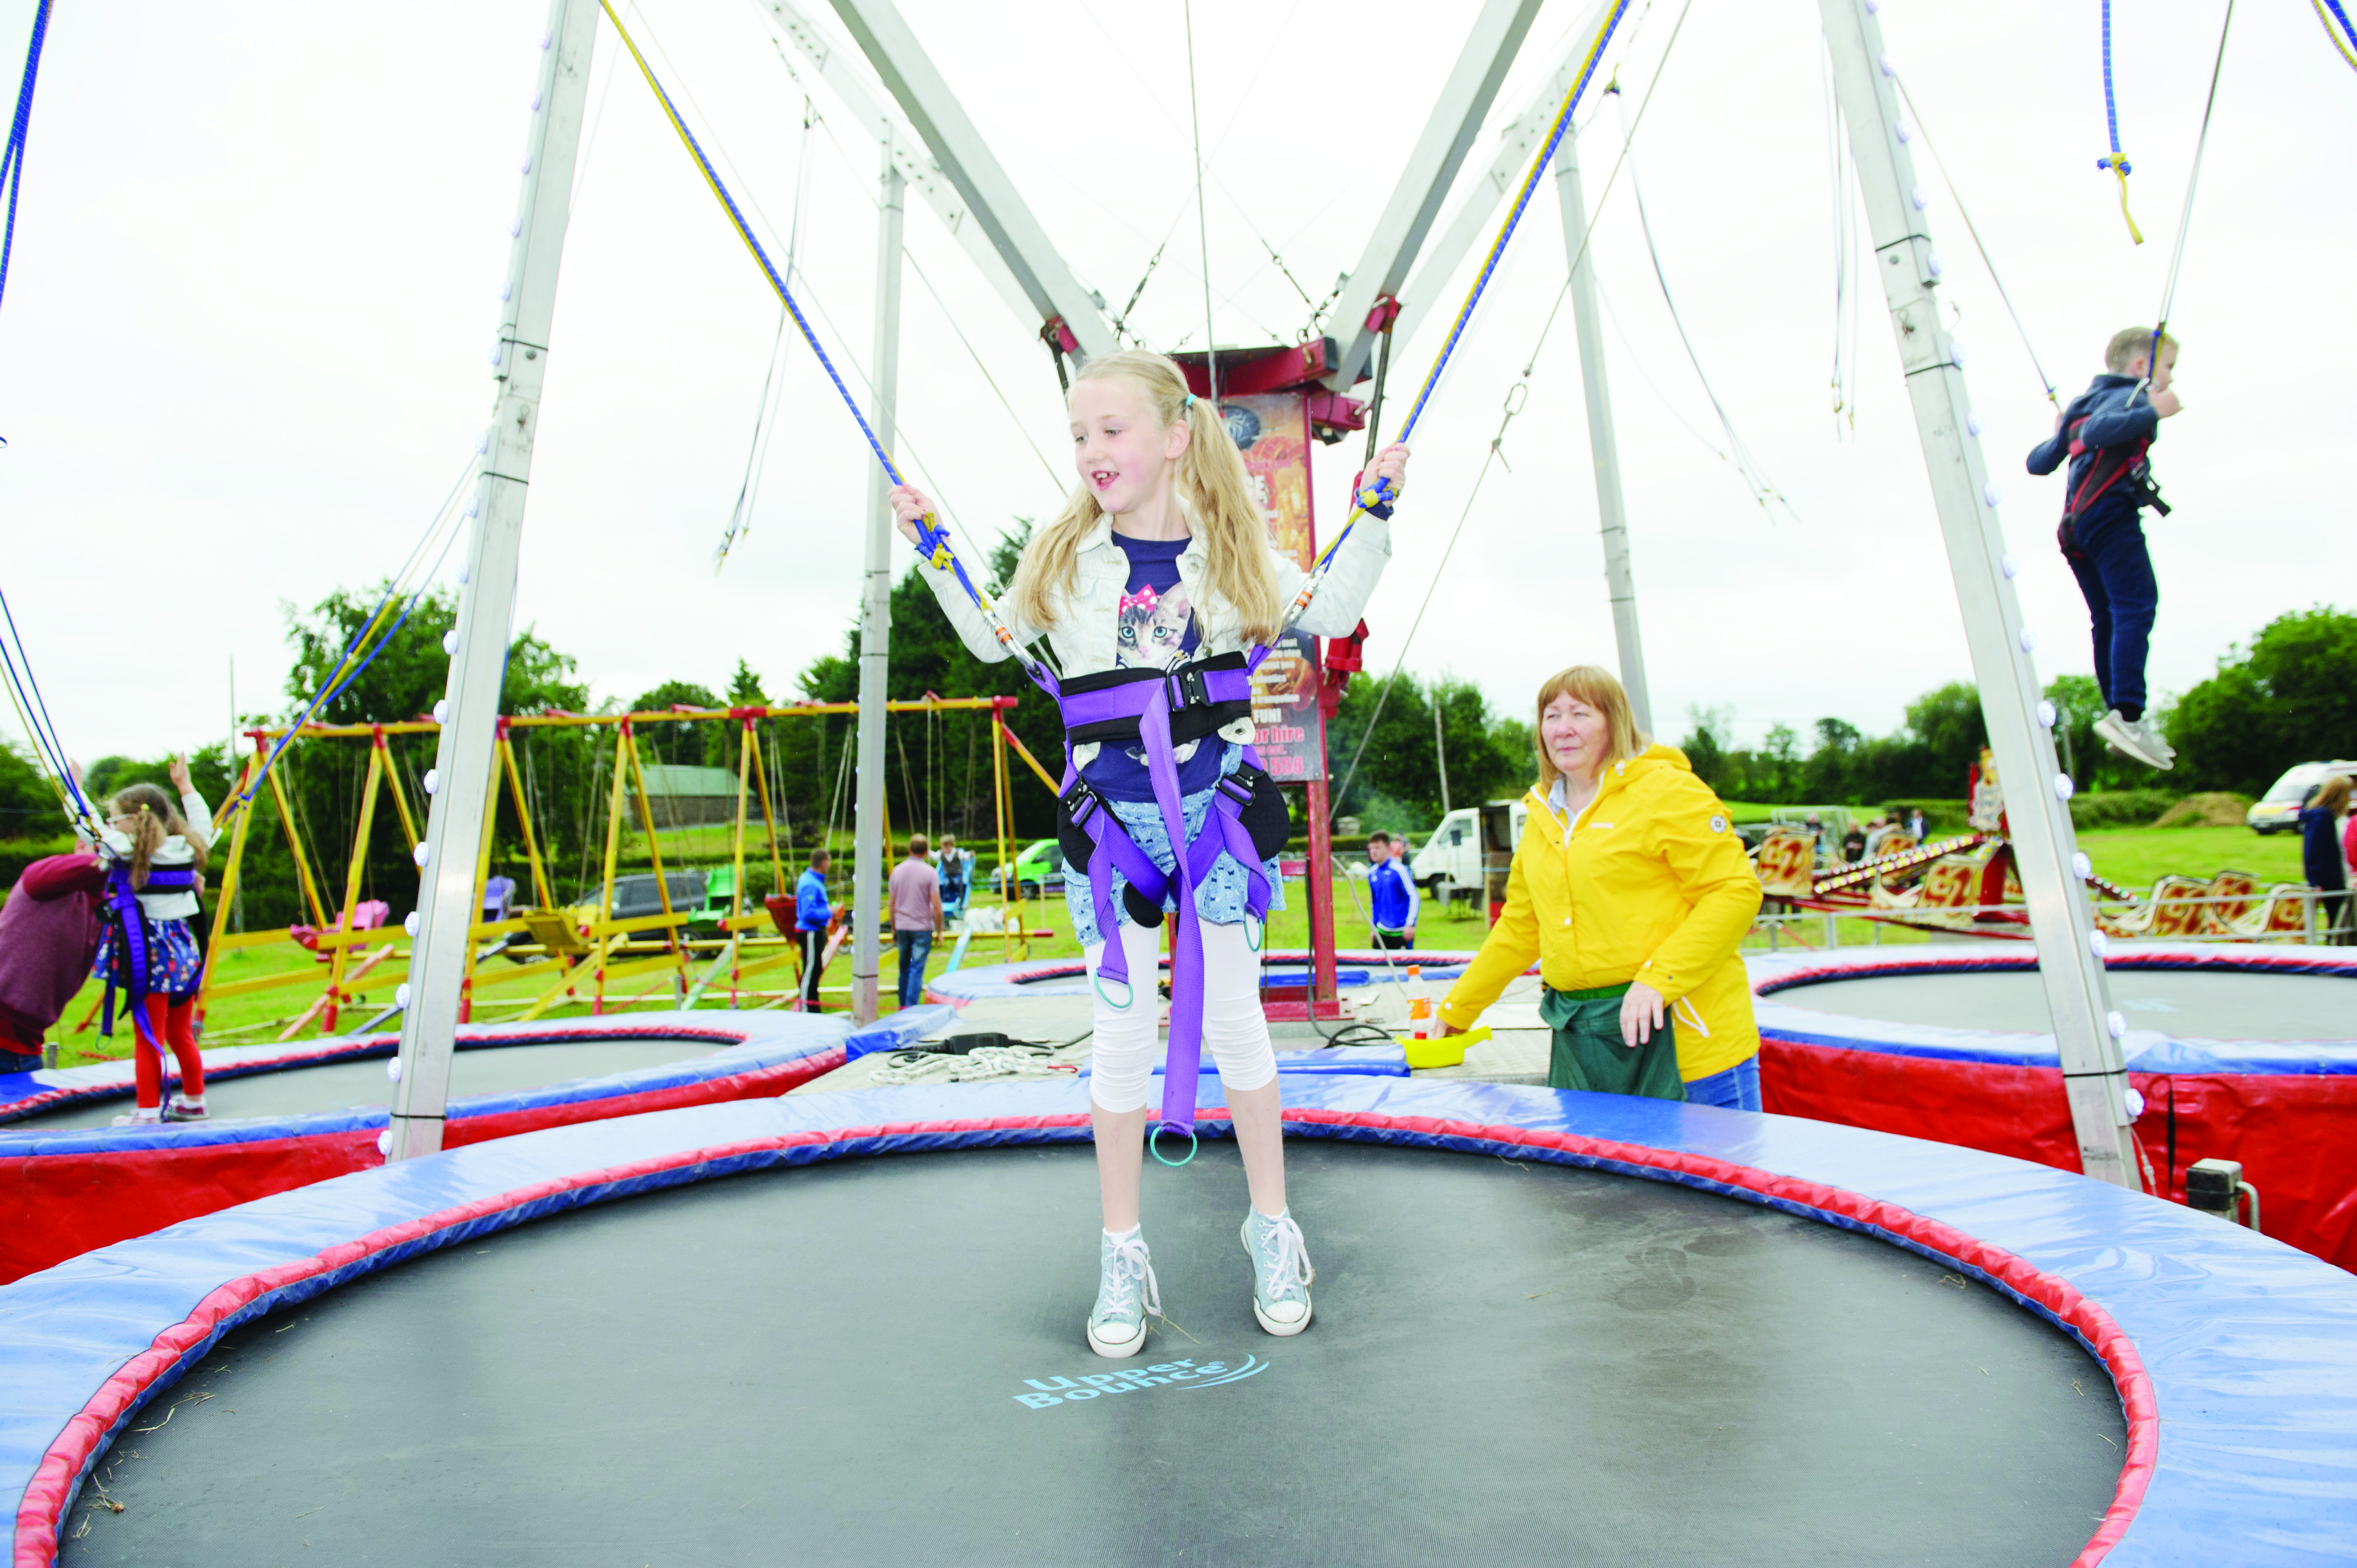 Ashling McCarten on one of the trampolines at the sports day. ©Rory Geary/The Northern Standard